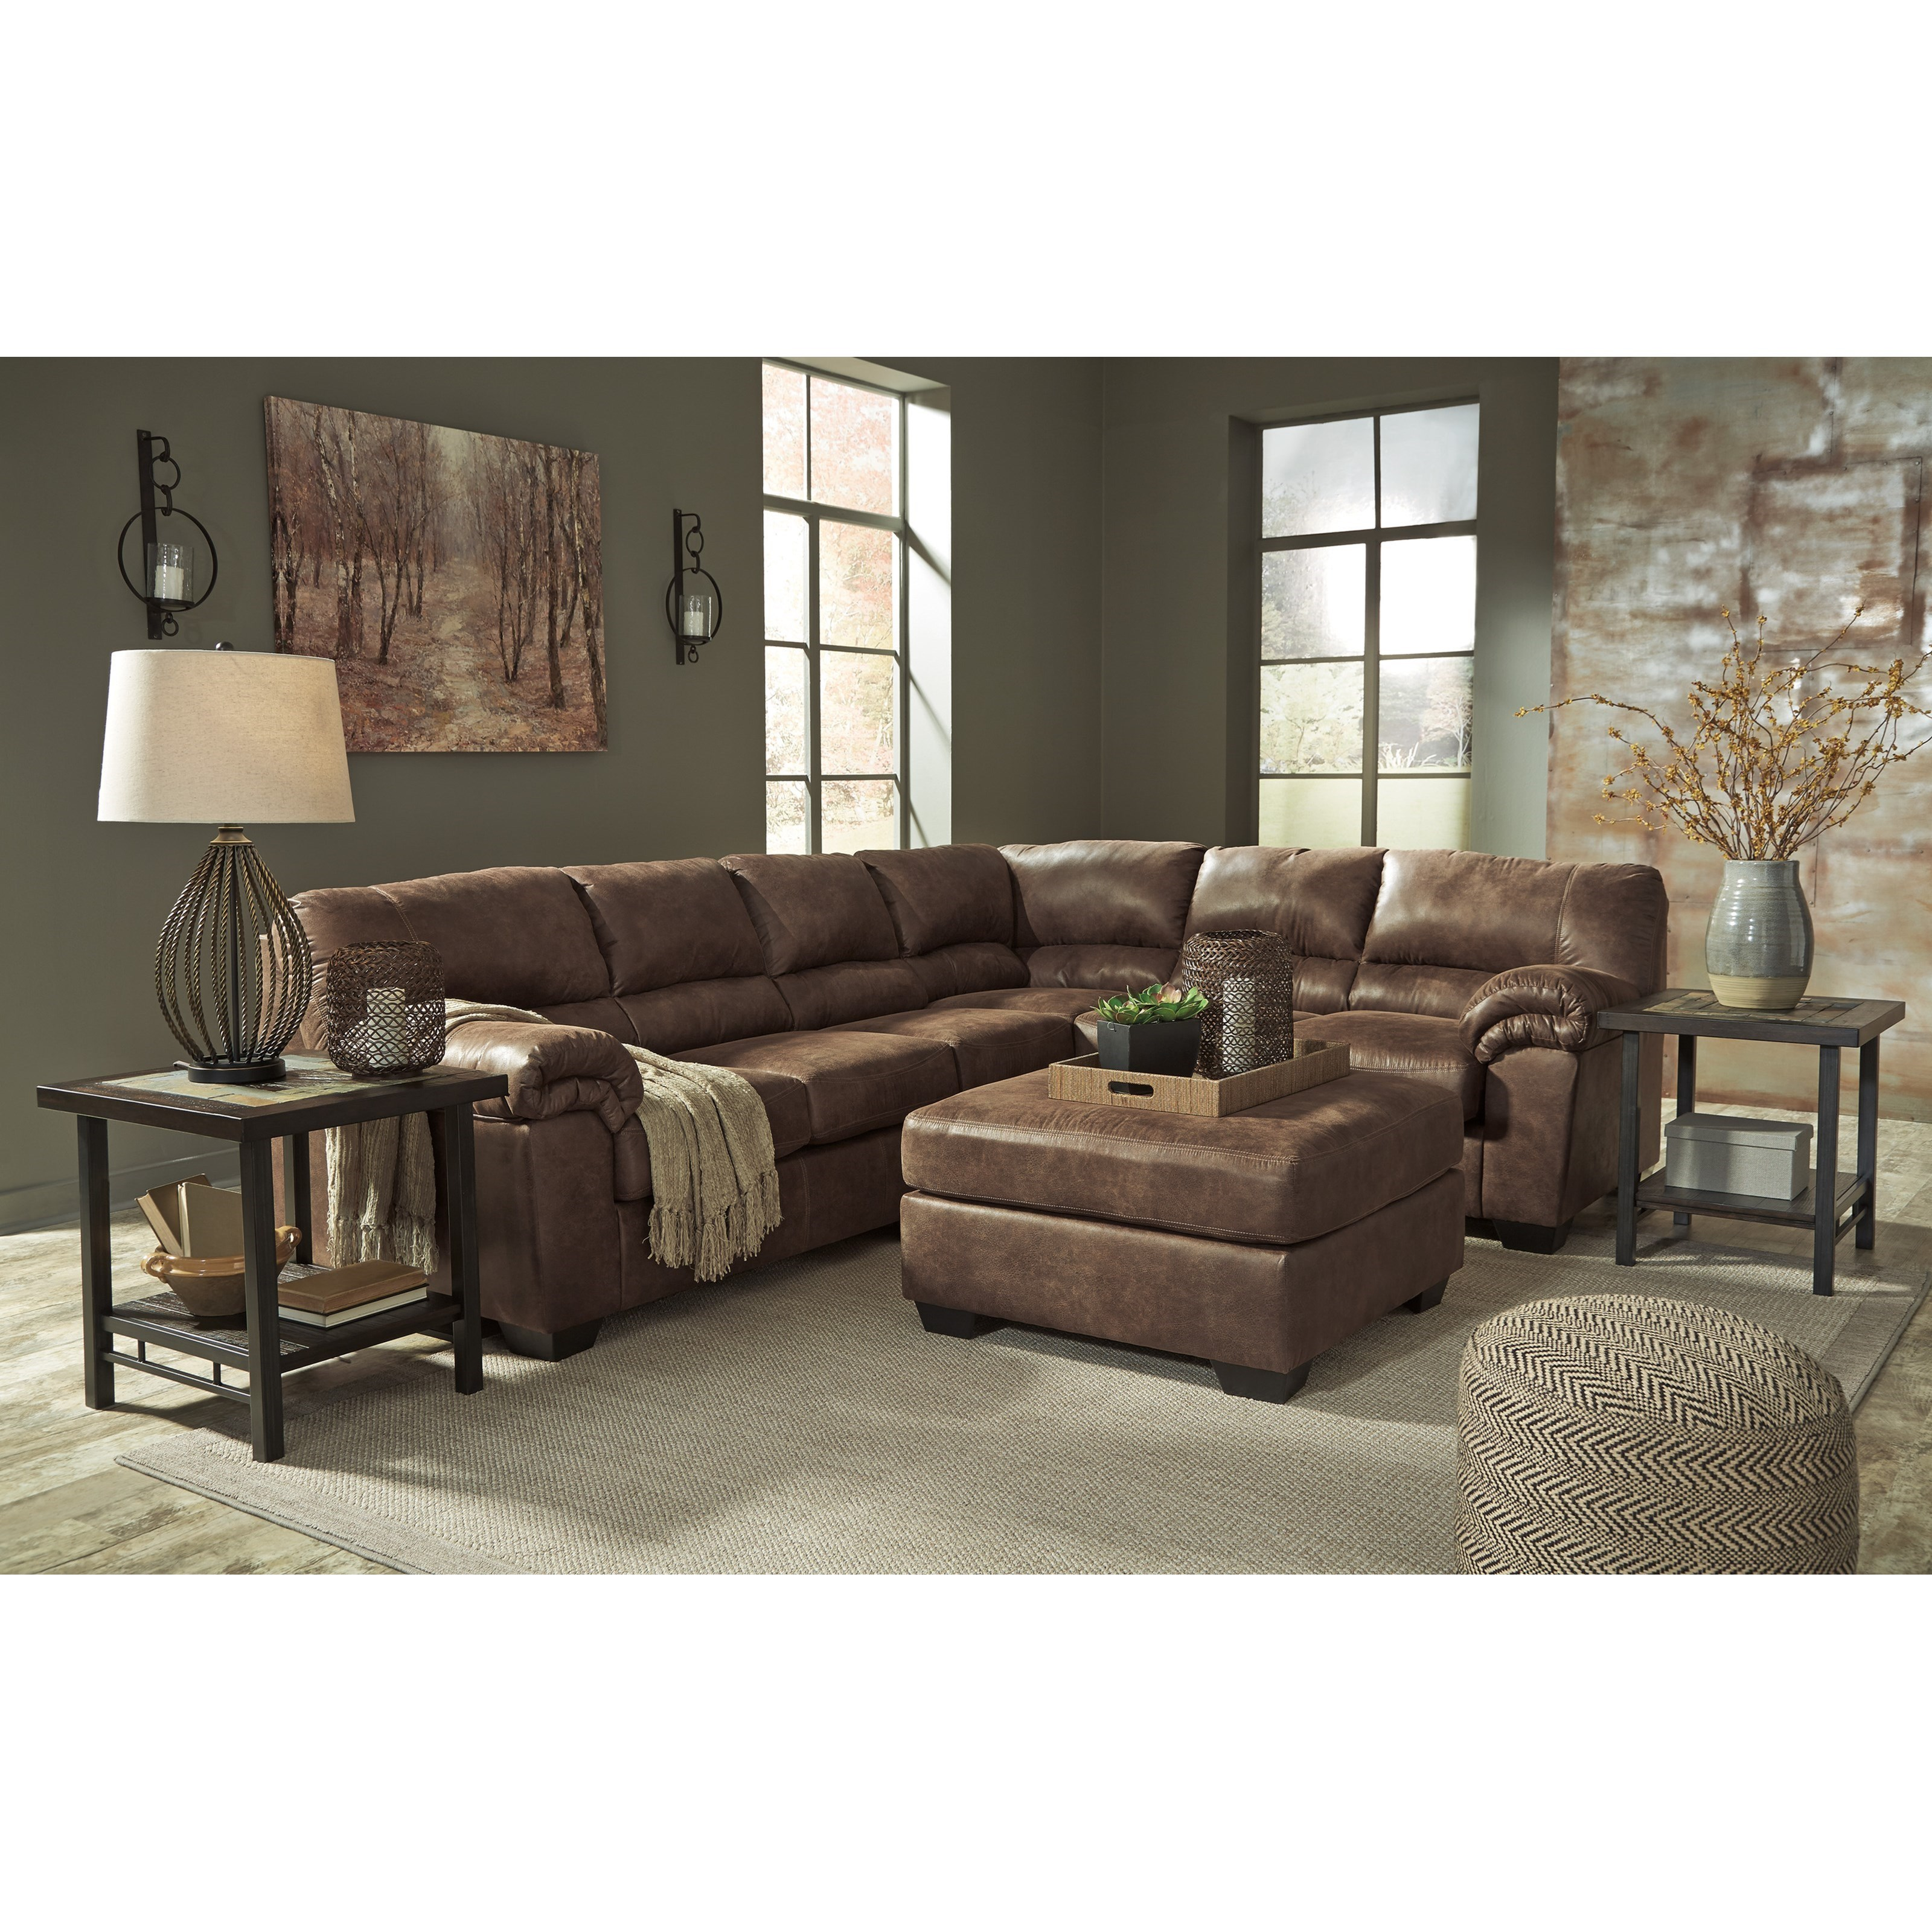 Signature Design By Ashley Bladen 3 Piece Faux Leather Sectional John V Schultz Furniture